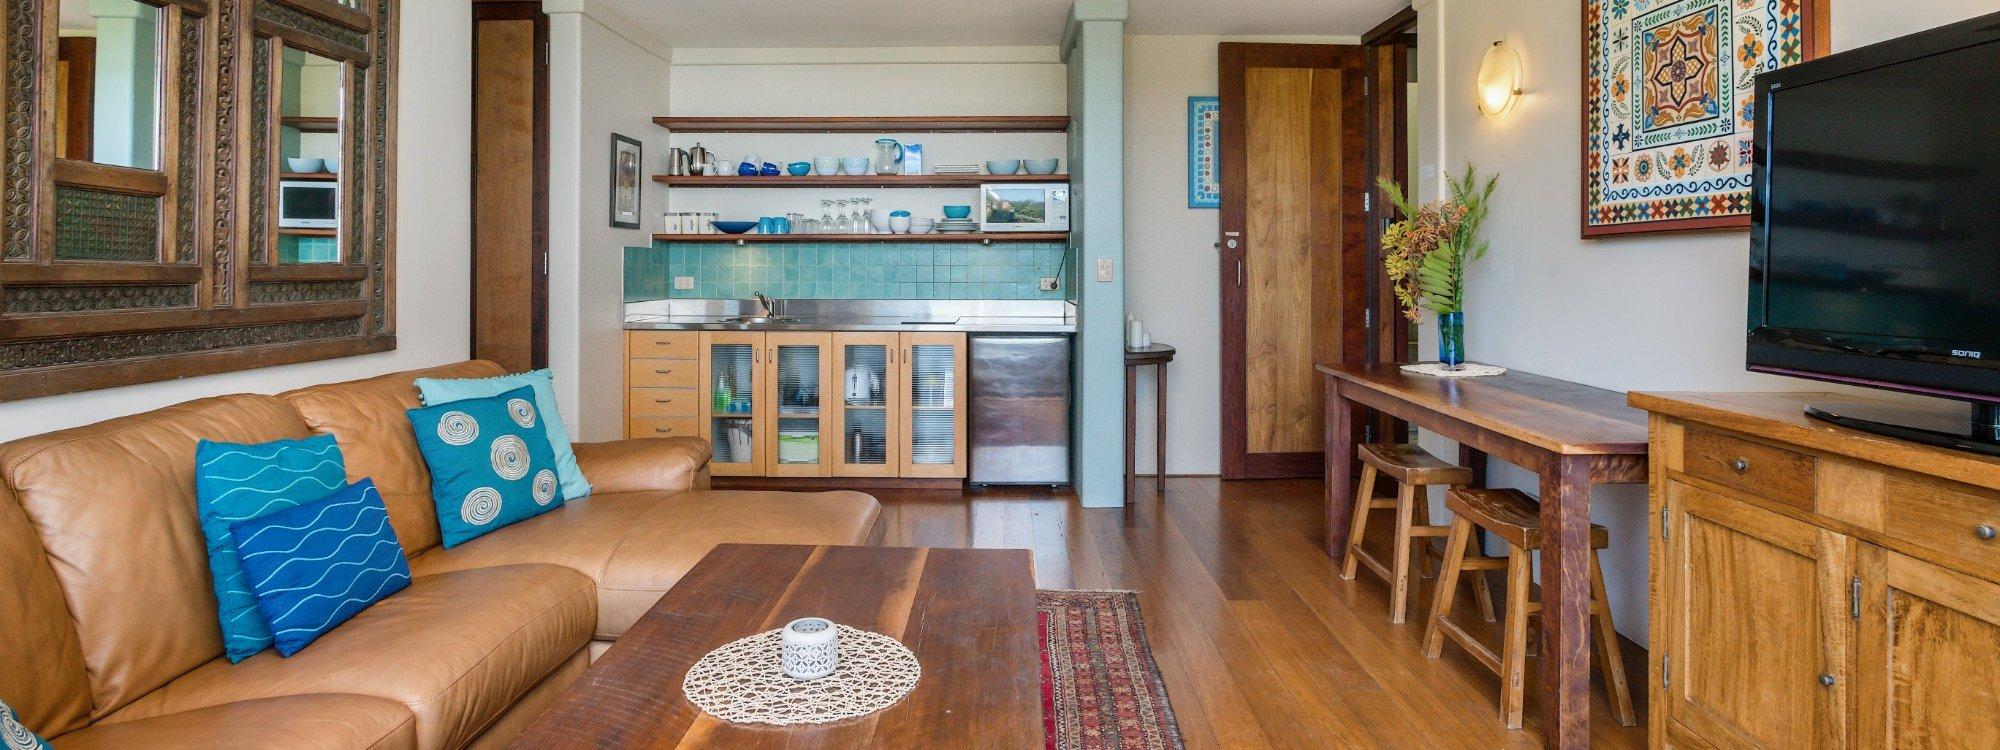 Wategos Retreats Apartment - Wategos Beach - Byron Bay - Apartment Living room and Kitchenette